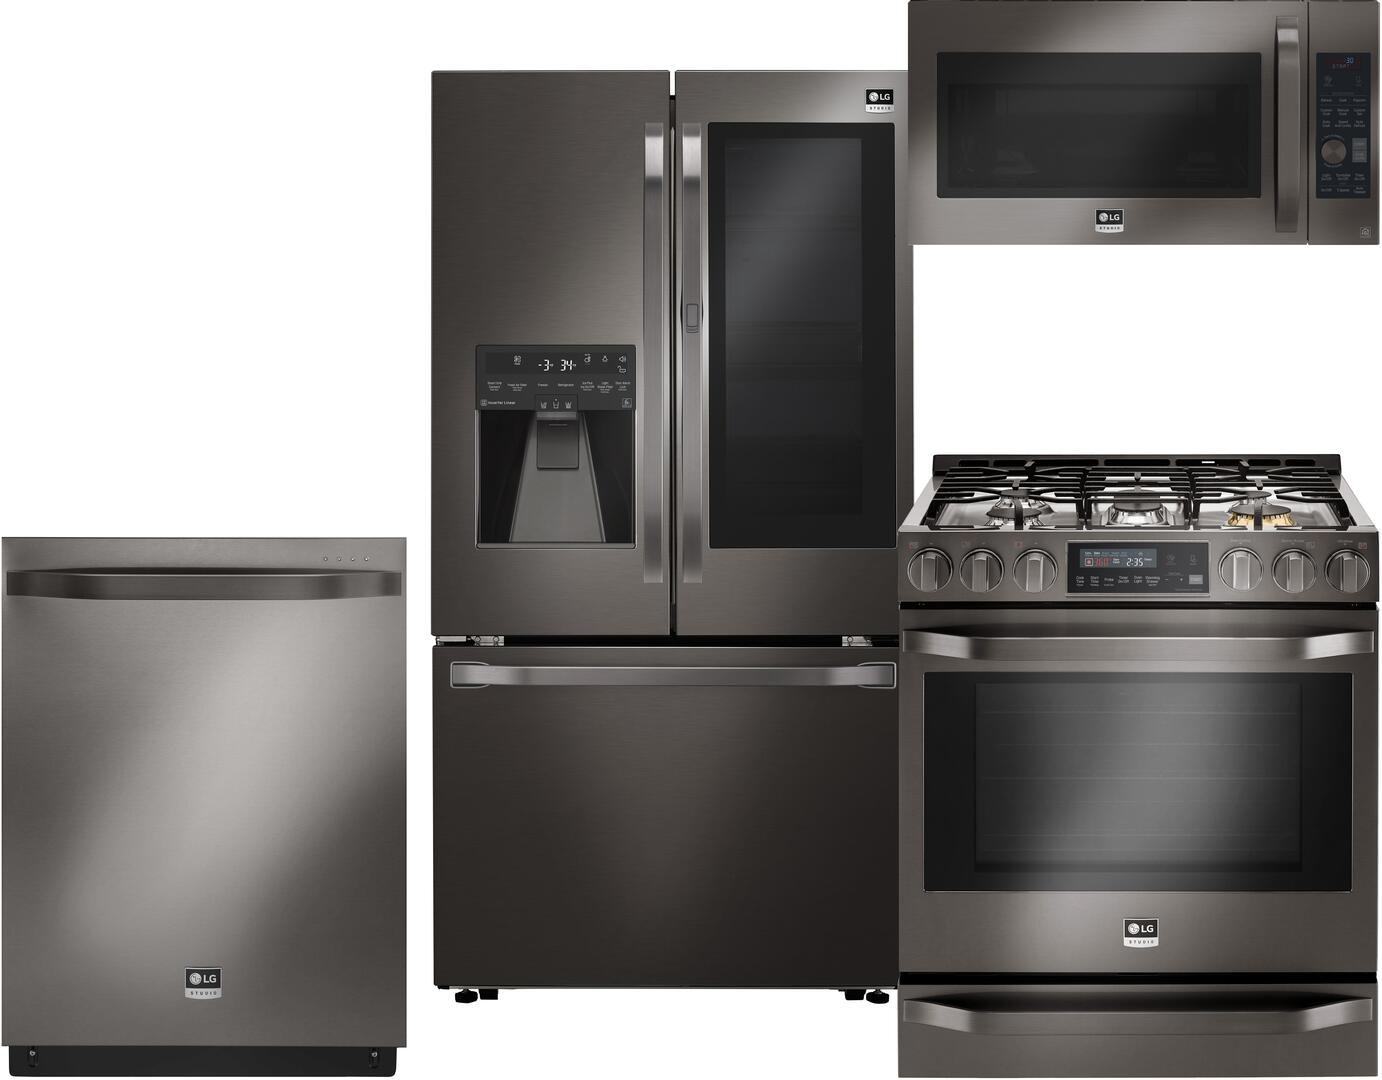 LG STUDIO: High End Smart Appliances for Your Kitchen | LG USA